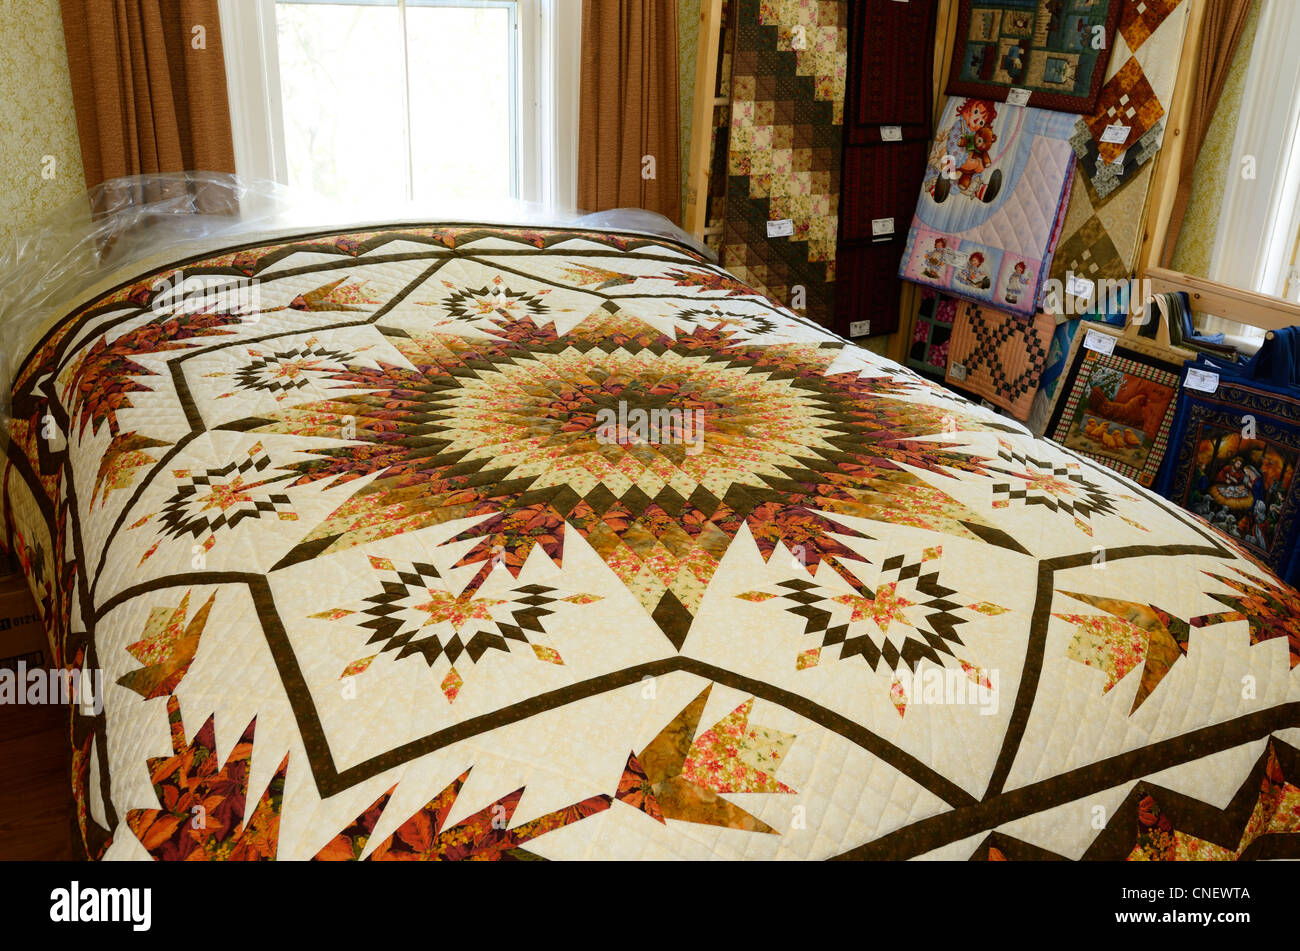 Handmade quilt in the bedroom of a Mennonite home near St Jacobs Ontario - Stock Image